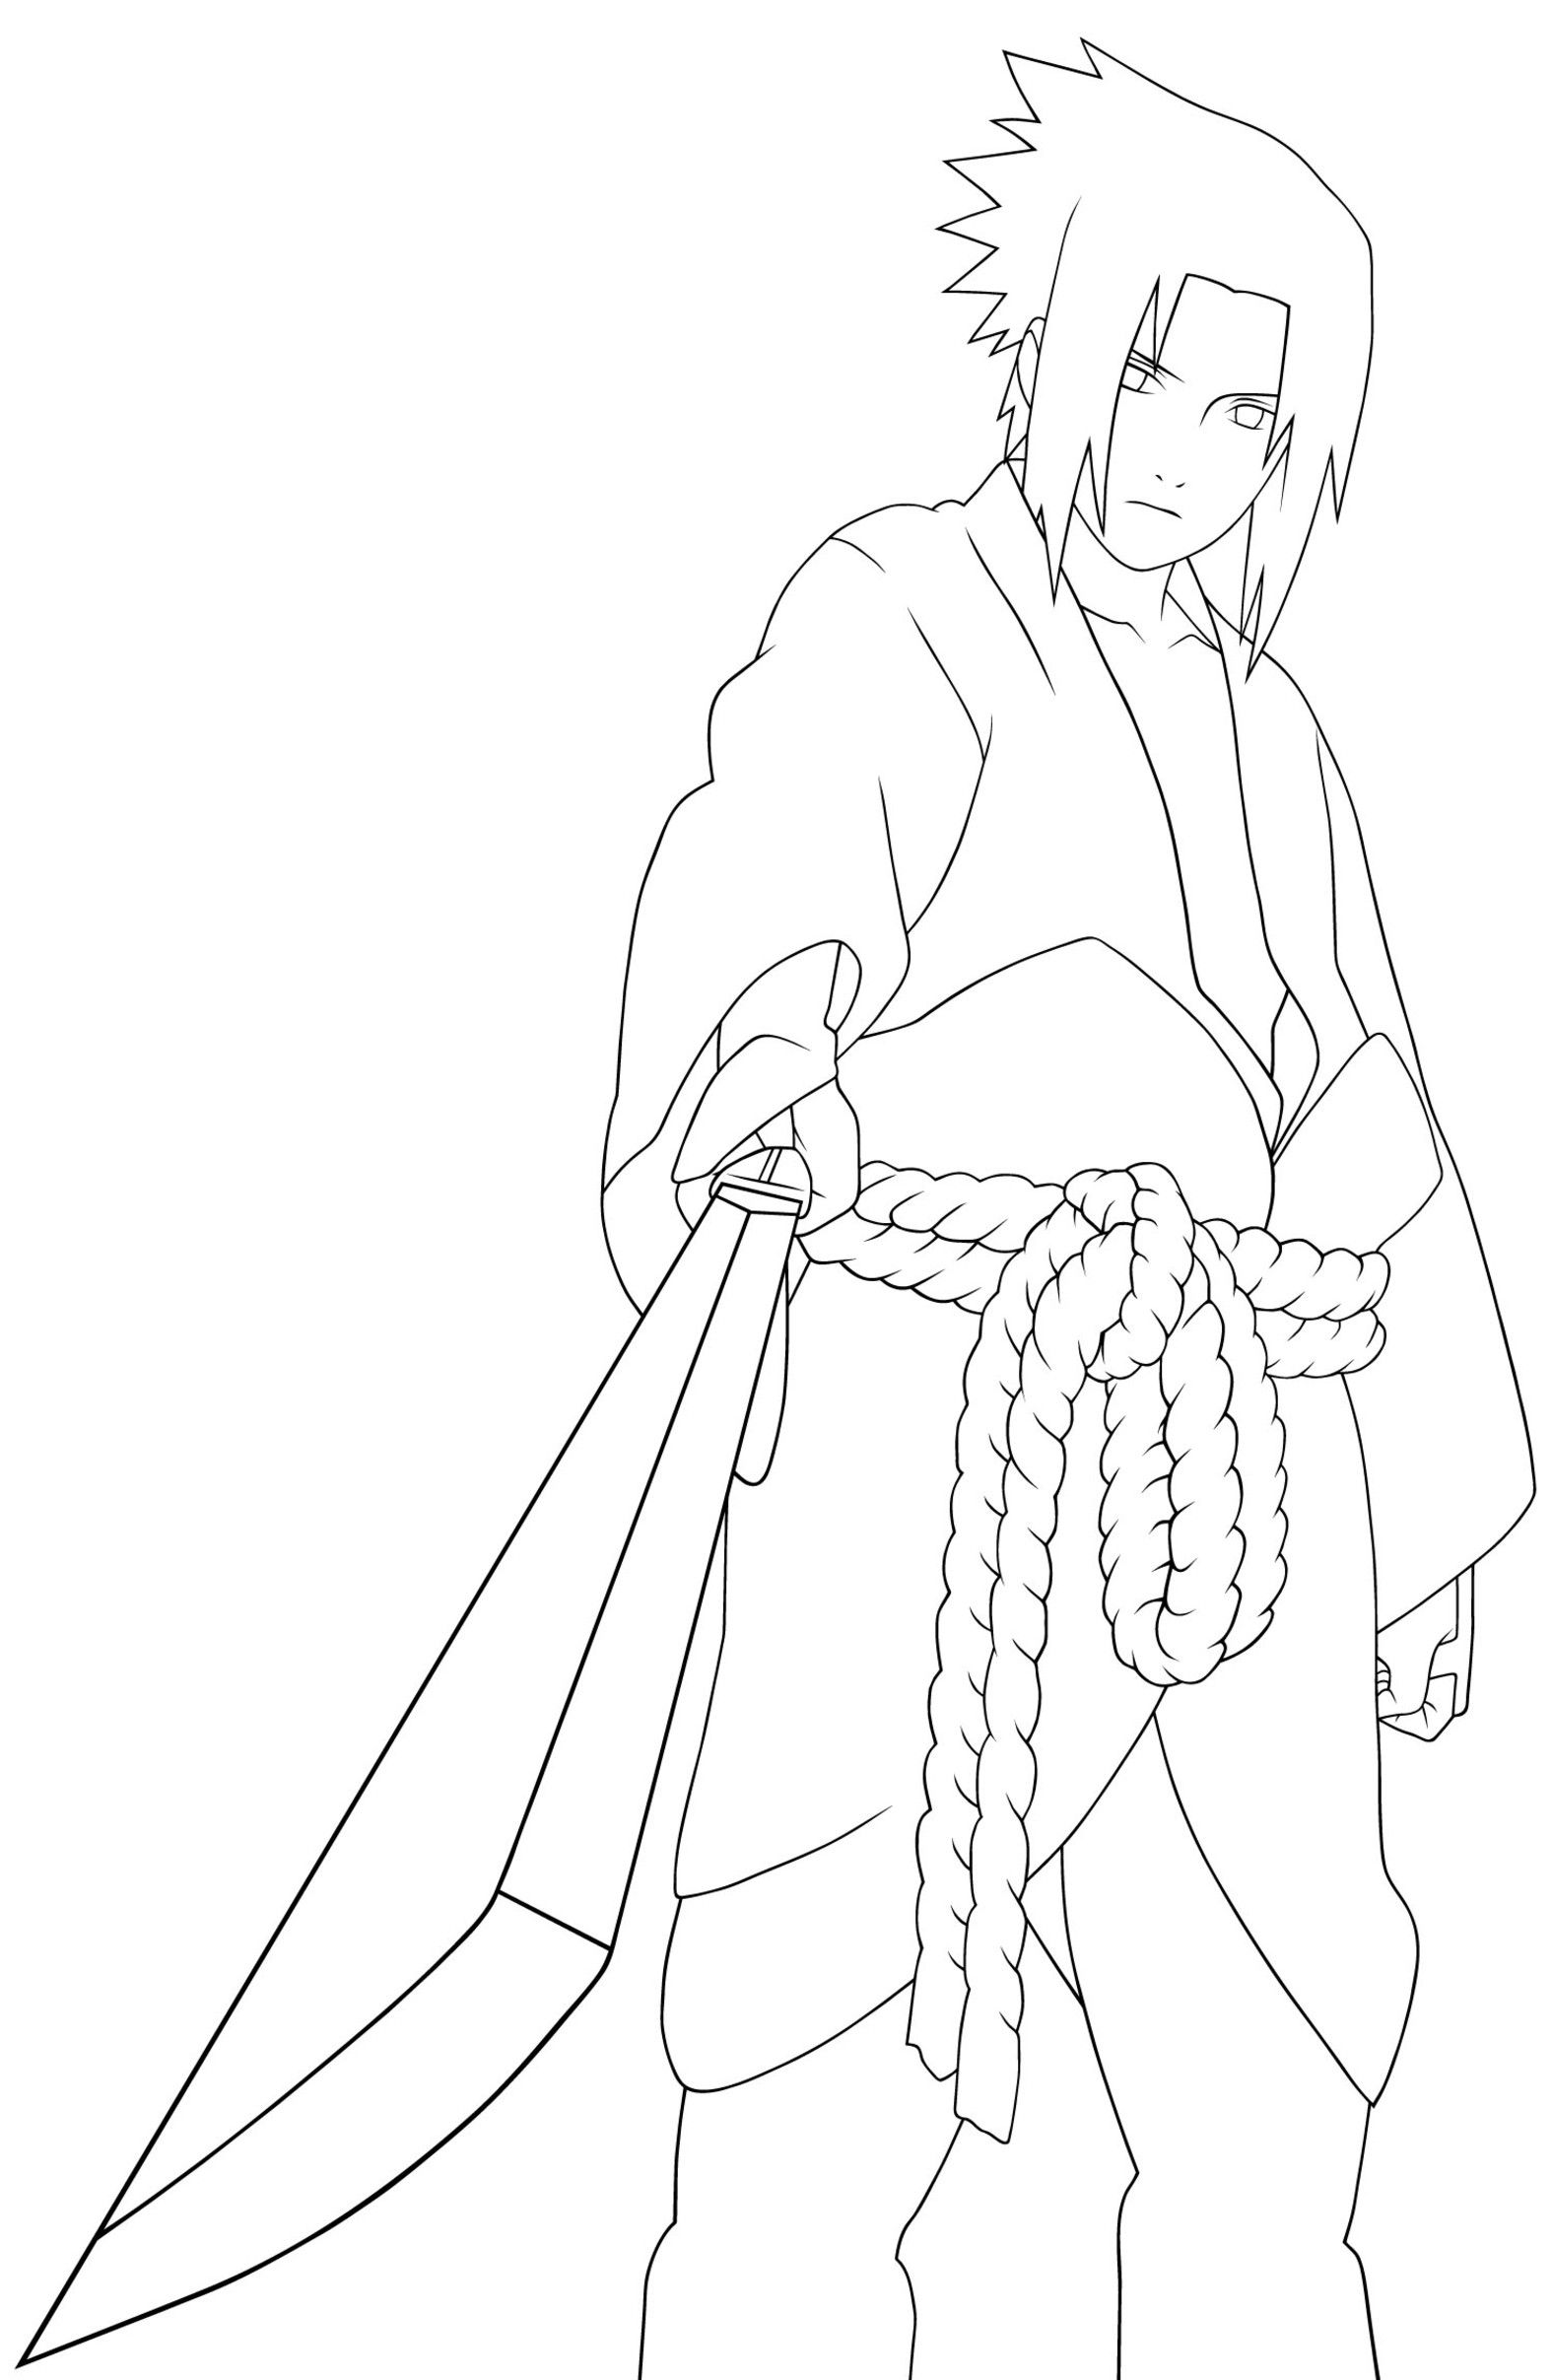 Here Are Some Naruto Coloring Pages For The Kids To Enjoy Description From Allcoloring